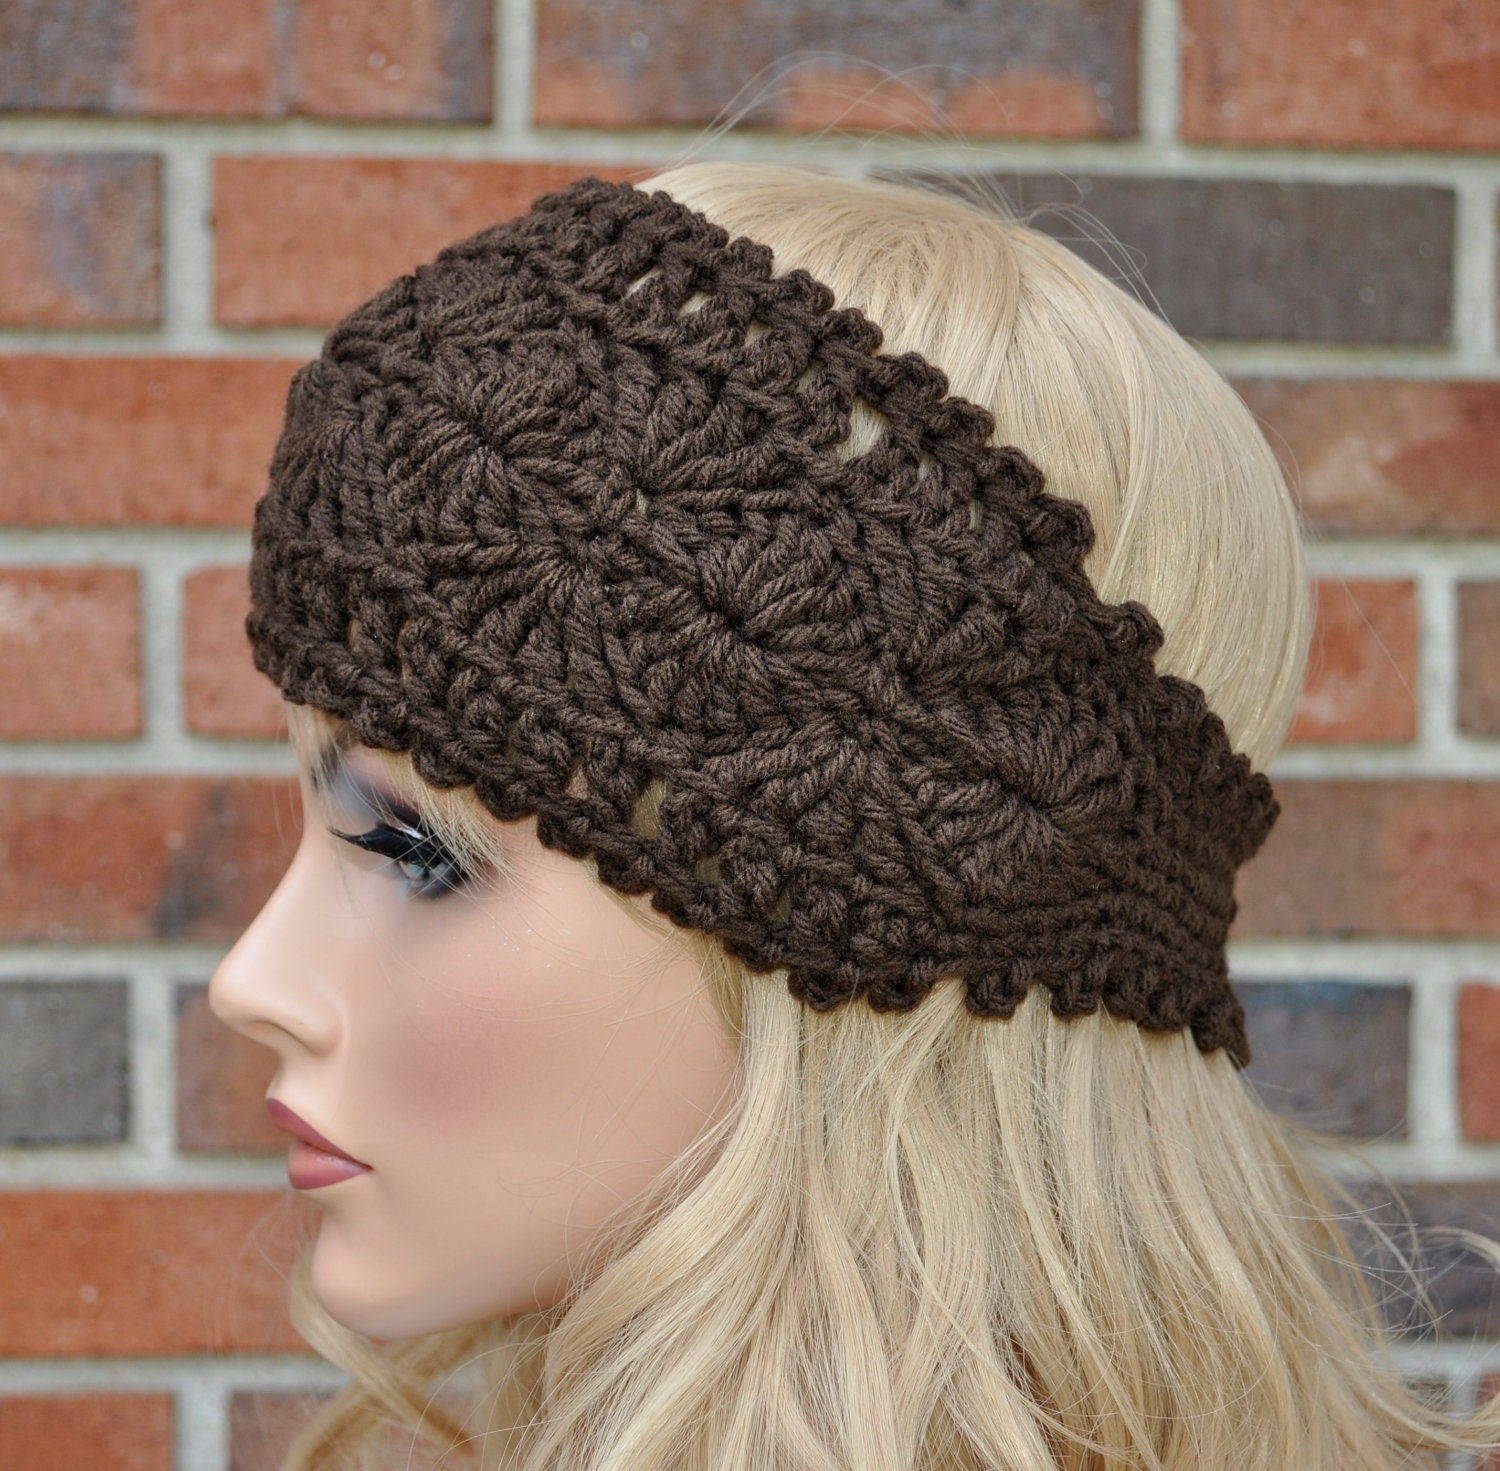 Crochet Headwrap Womens Crochet Headband in Chocolate by Cobanul